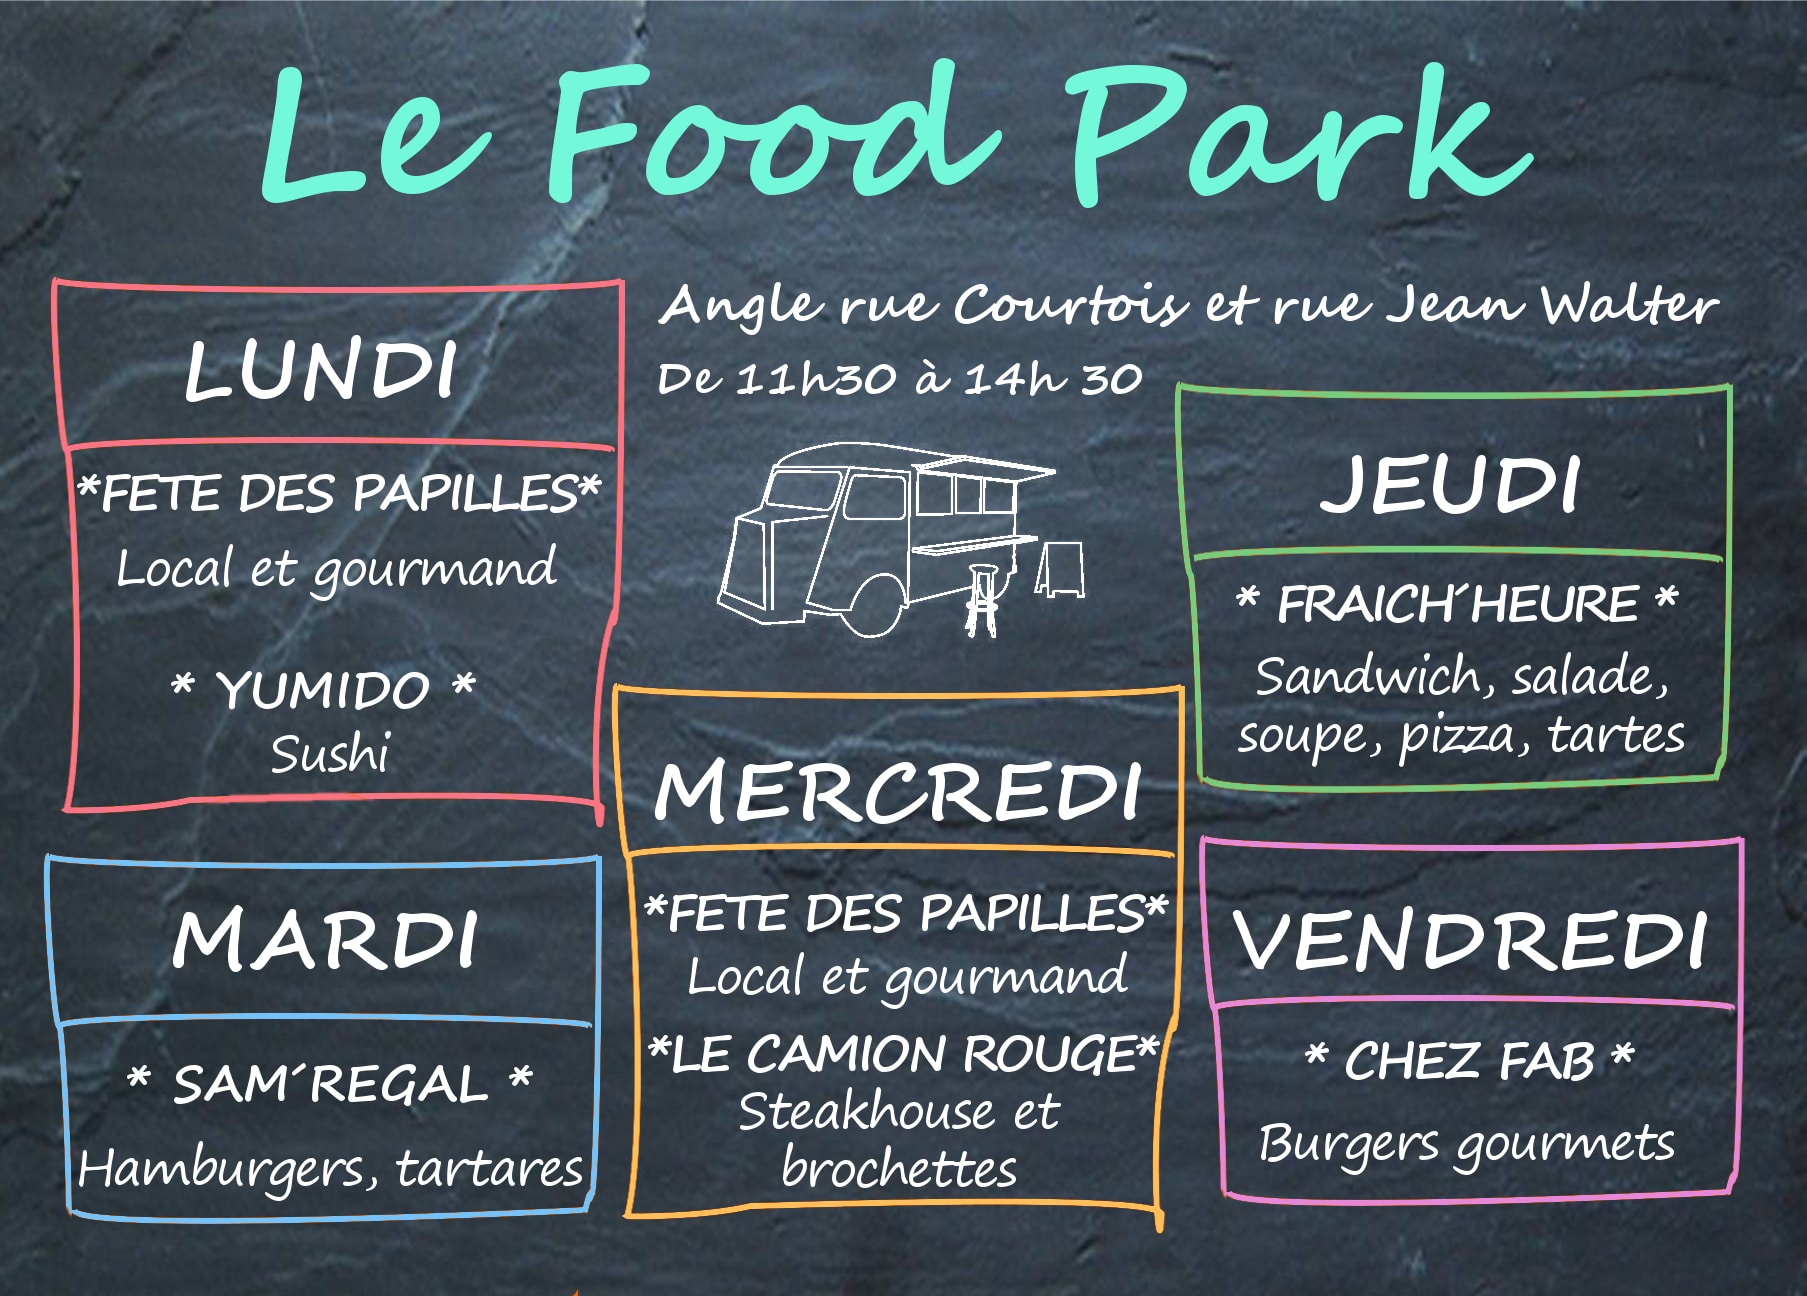 Planning des Food trucks à Lille sur le Food Park